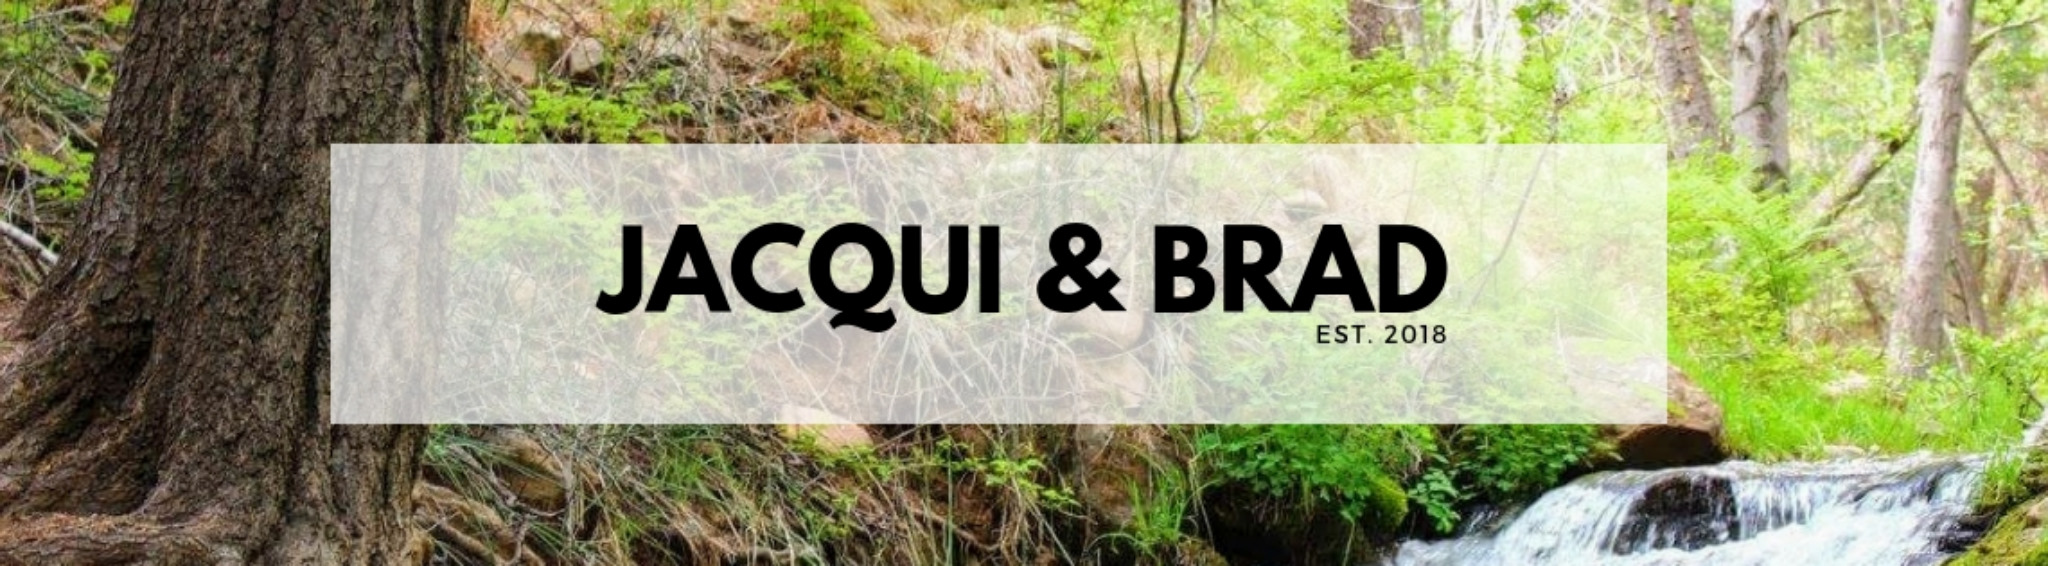 Jacqui & Brad store: baby, toddler, kids, and adult clothes and home accessories